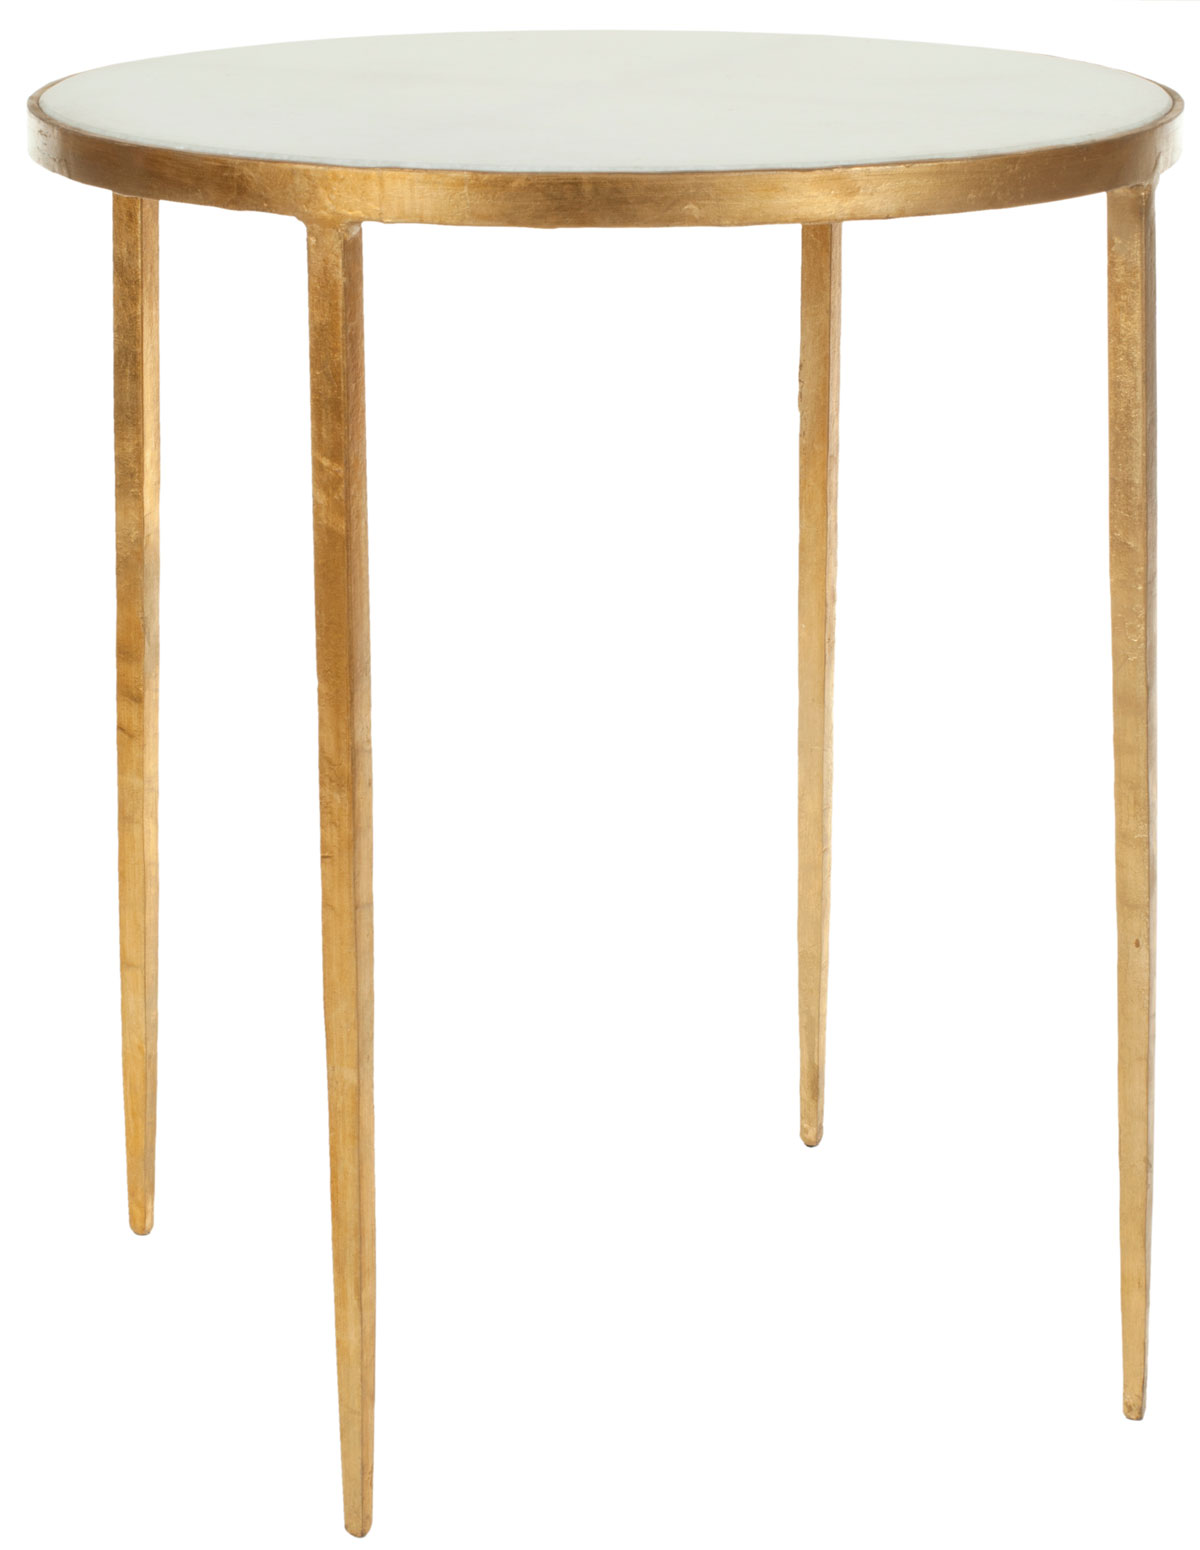 FOX2507A Accent Tables - Furniture by Safavieh